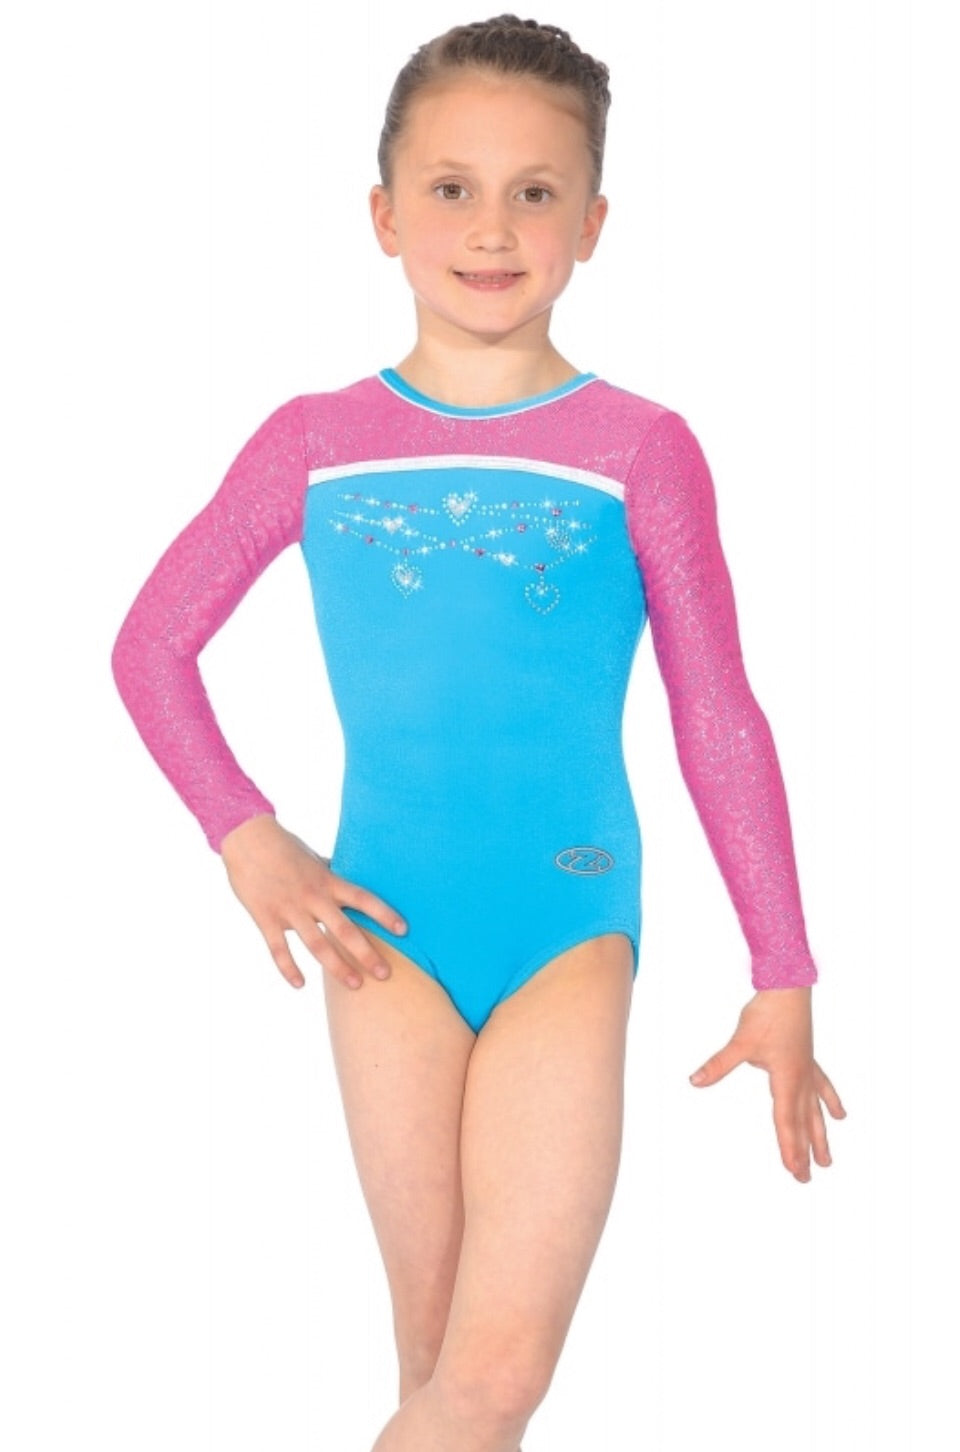 The Zone Charmed Leotard